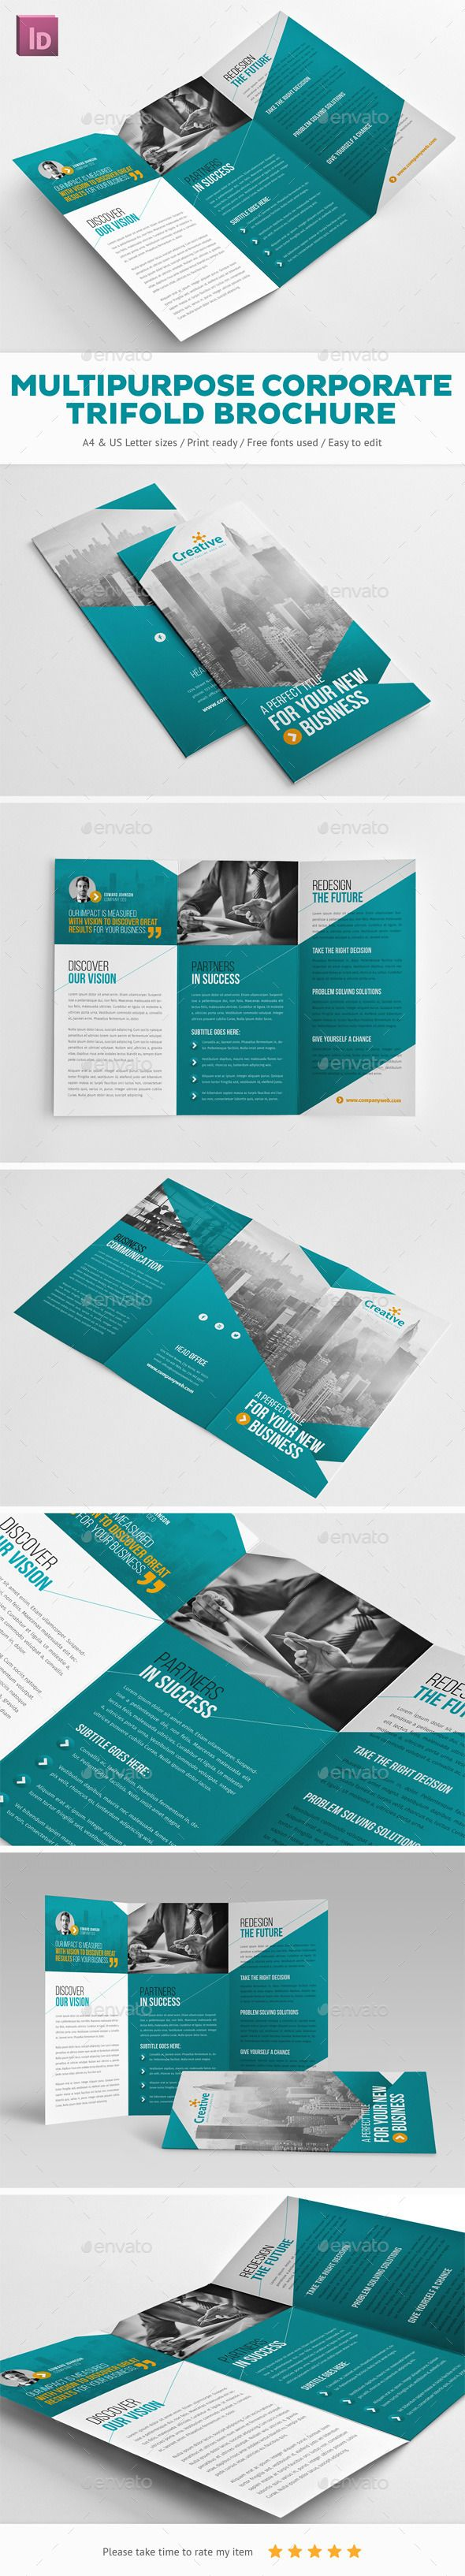 Multipurpose Corporate Trifold Brochure Template #design Download: http://graphicriver.net/item/multipurpose-corporate-trifold-brochure/11928054?ref=ksioks